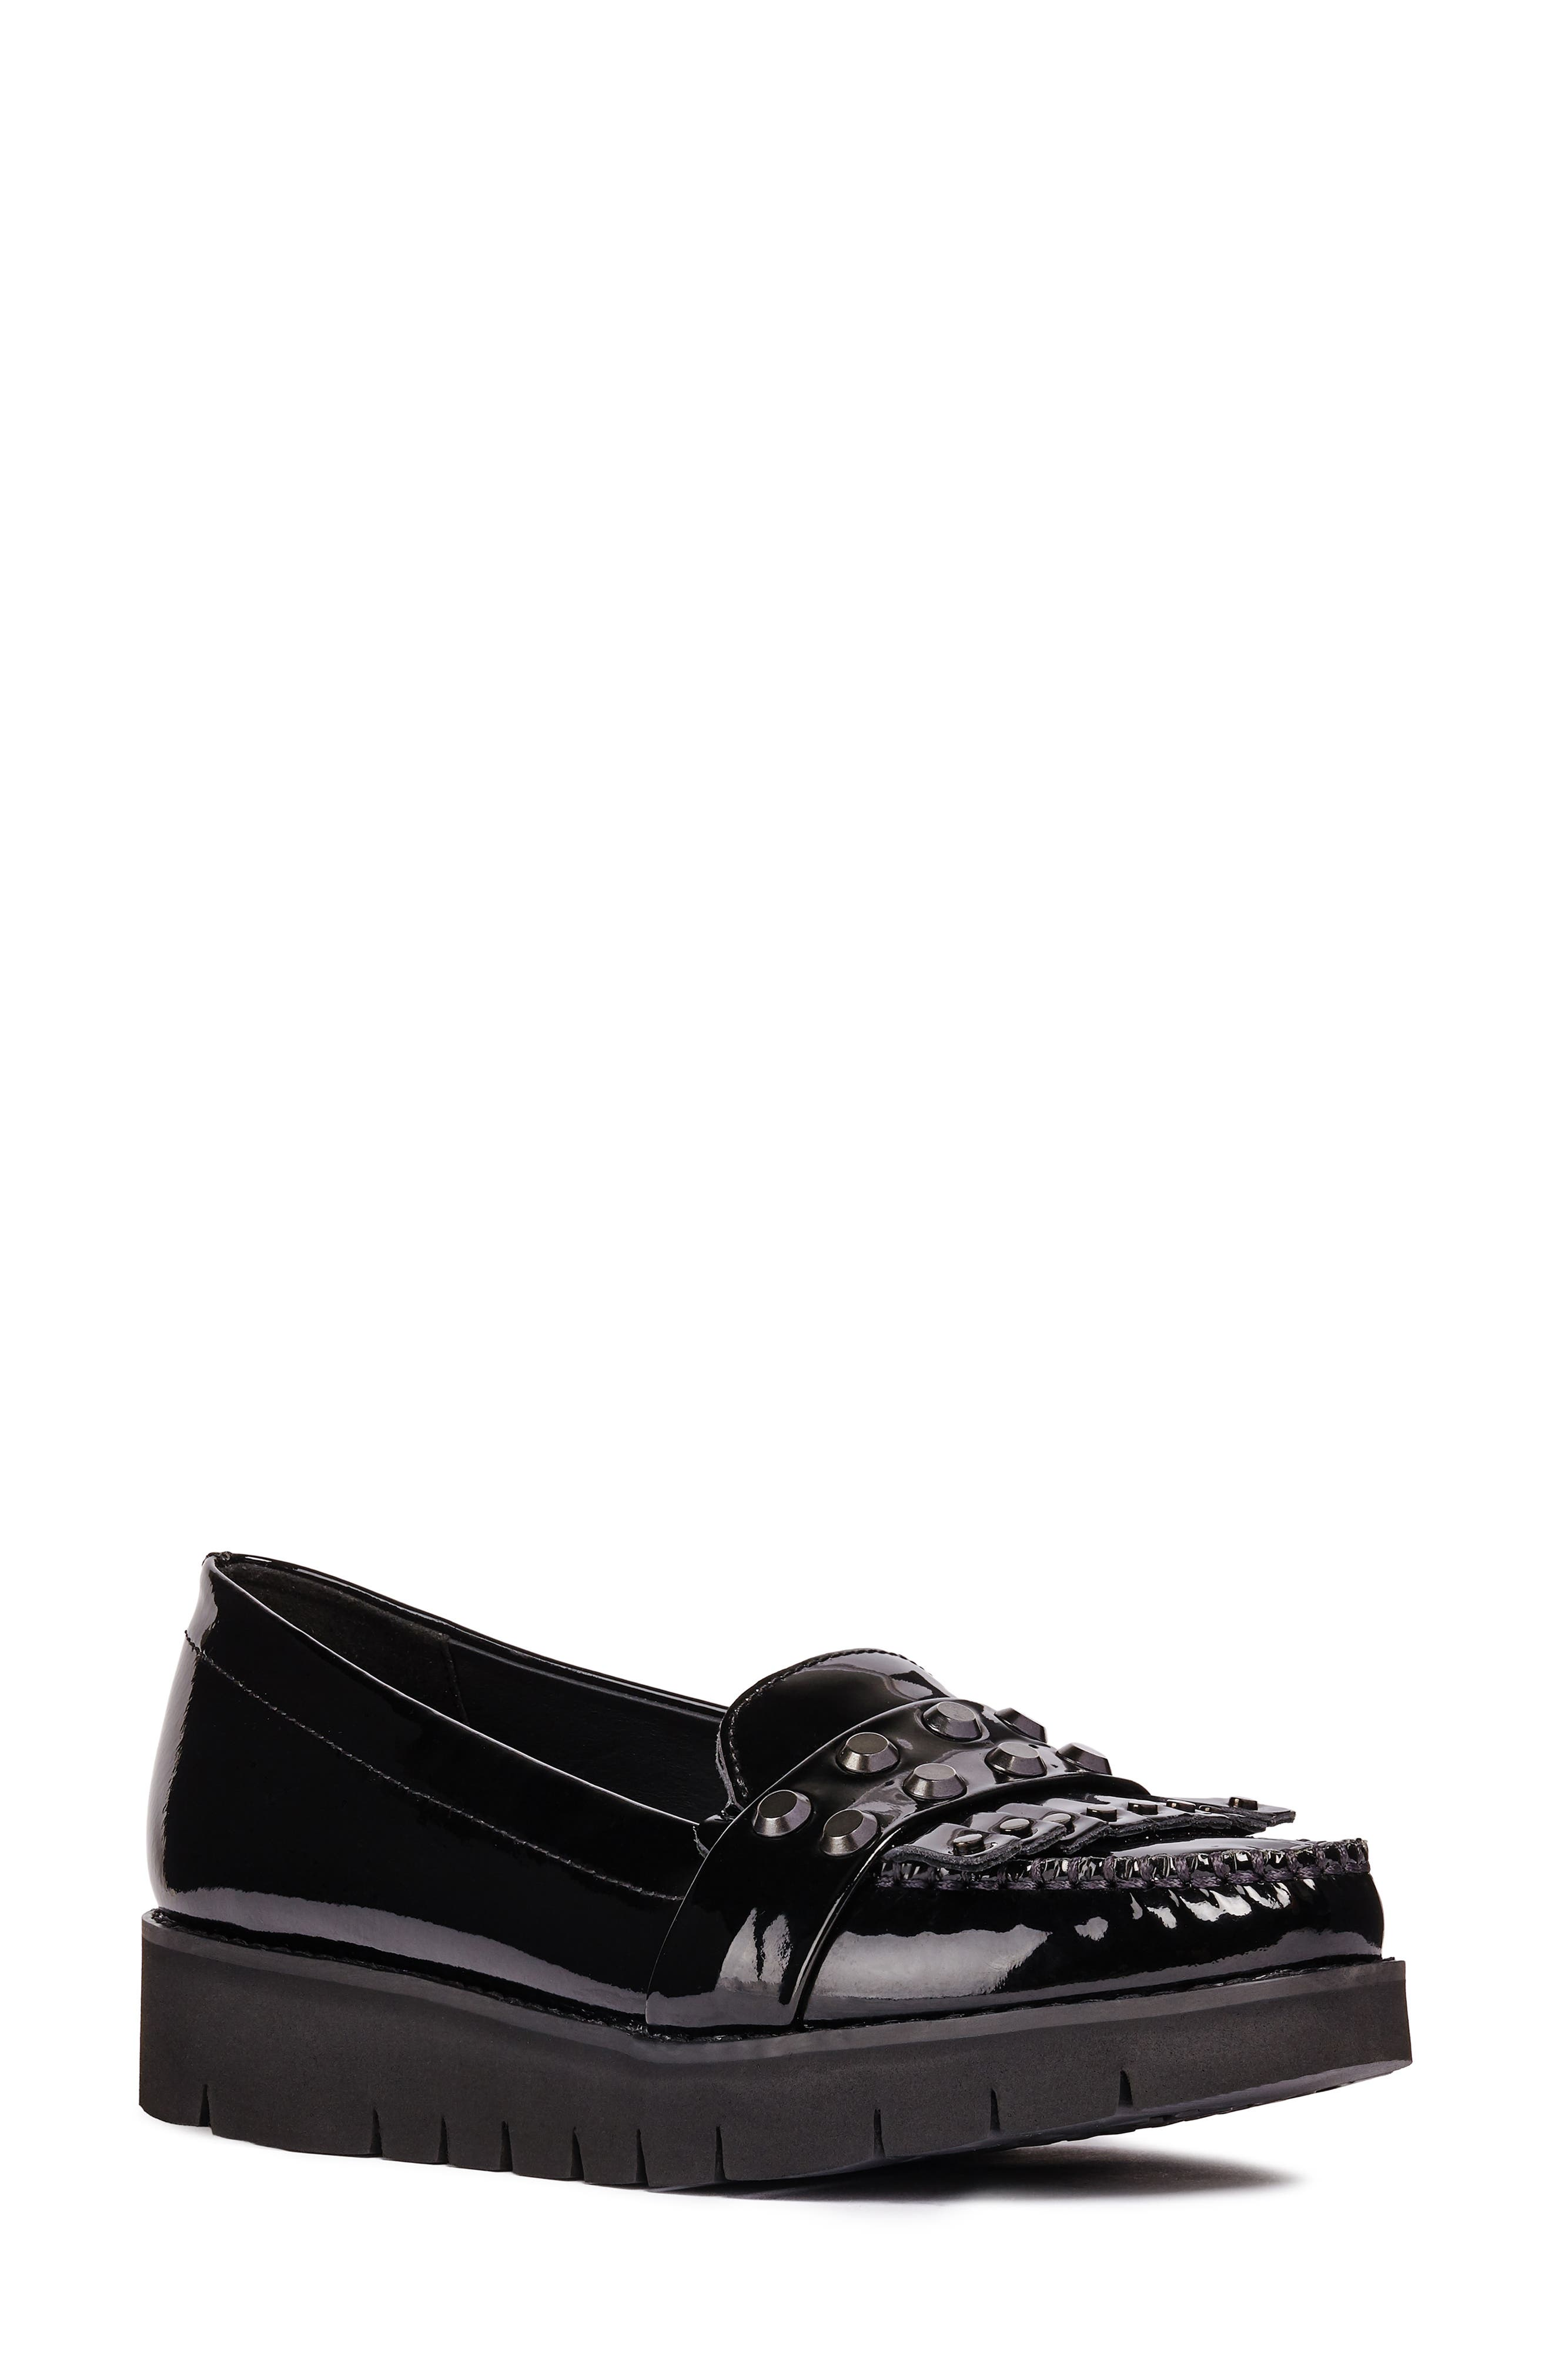 Blenda Studded Kiltie Loafer,                         Main,                         color, BLACK LEATHER